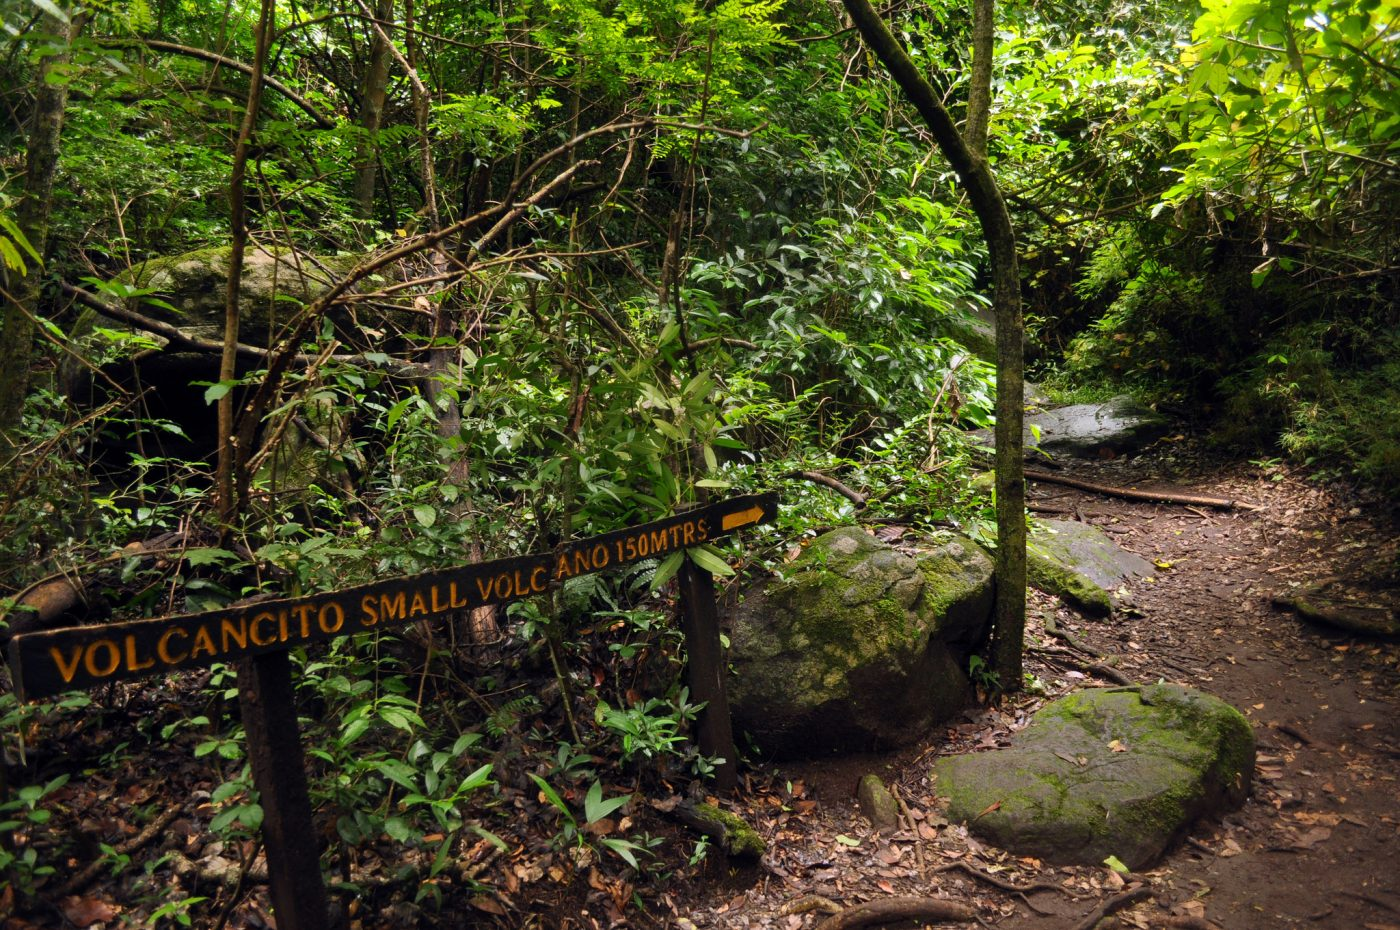 Trail signage in Rincon de la Vieja National Park, Costa Rica